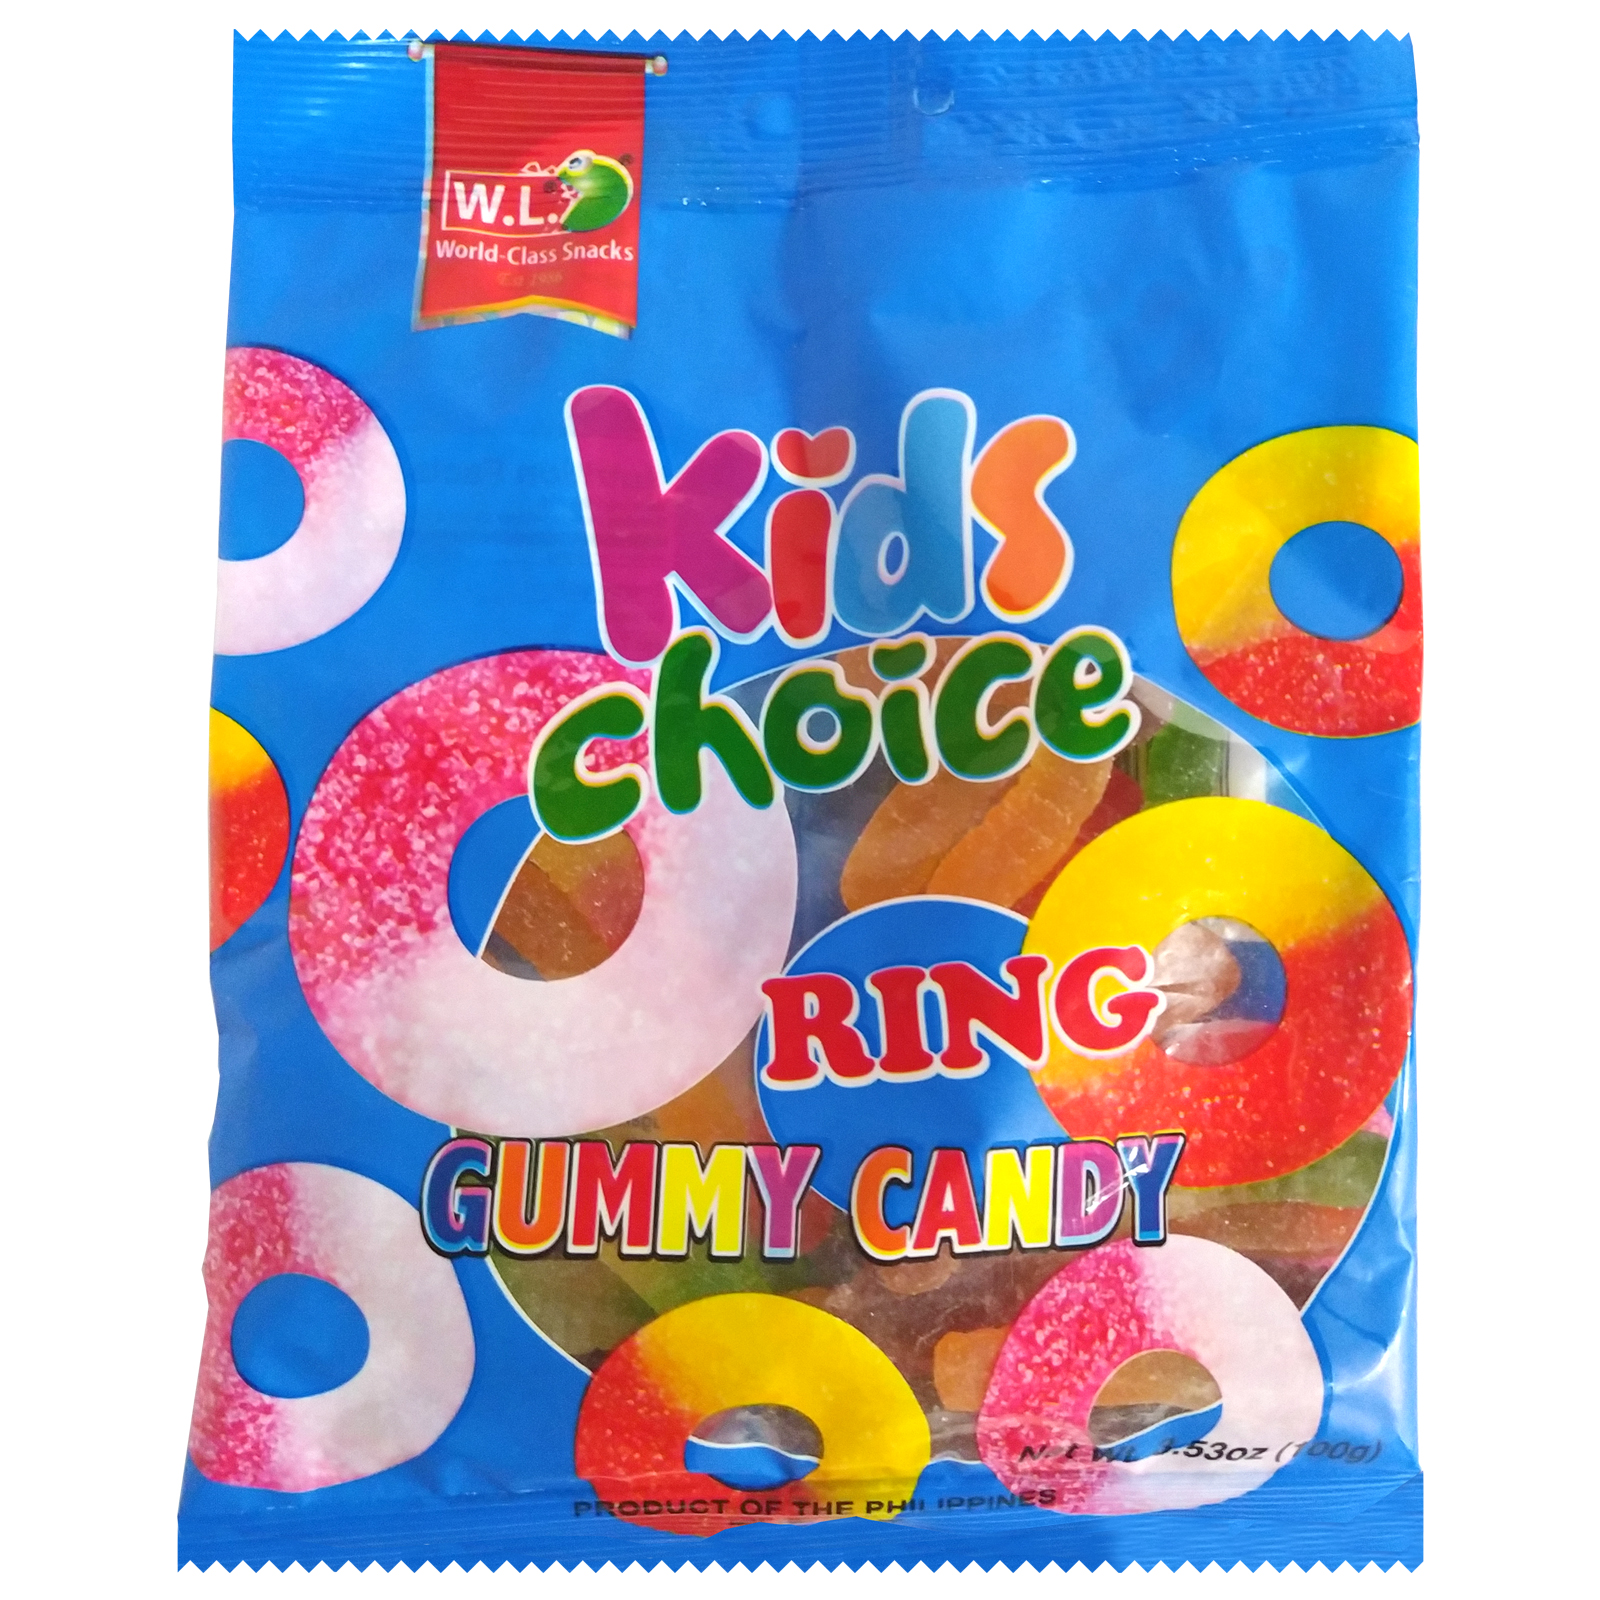 Kids Choice Ring Gummy Candy 100g